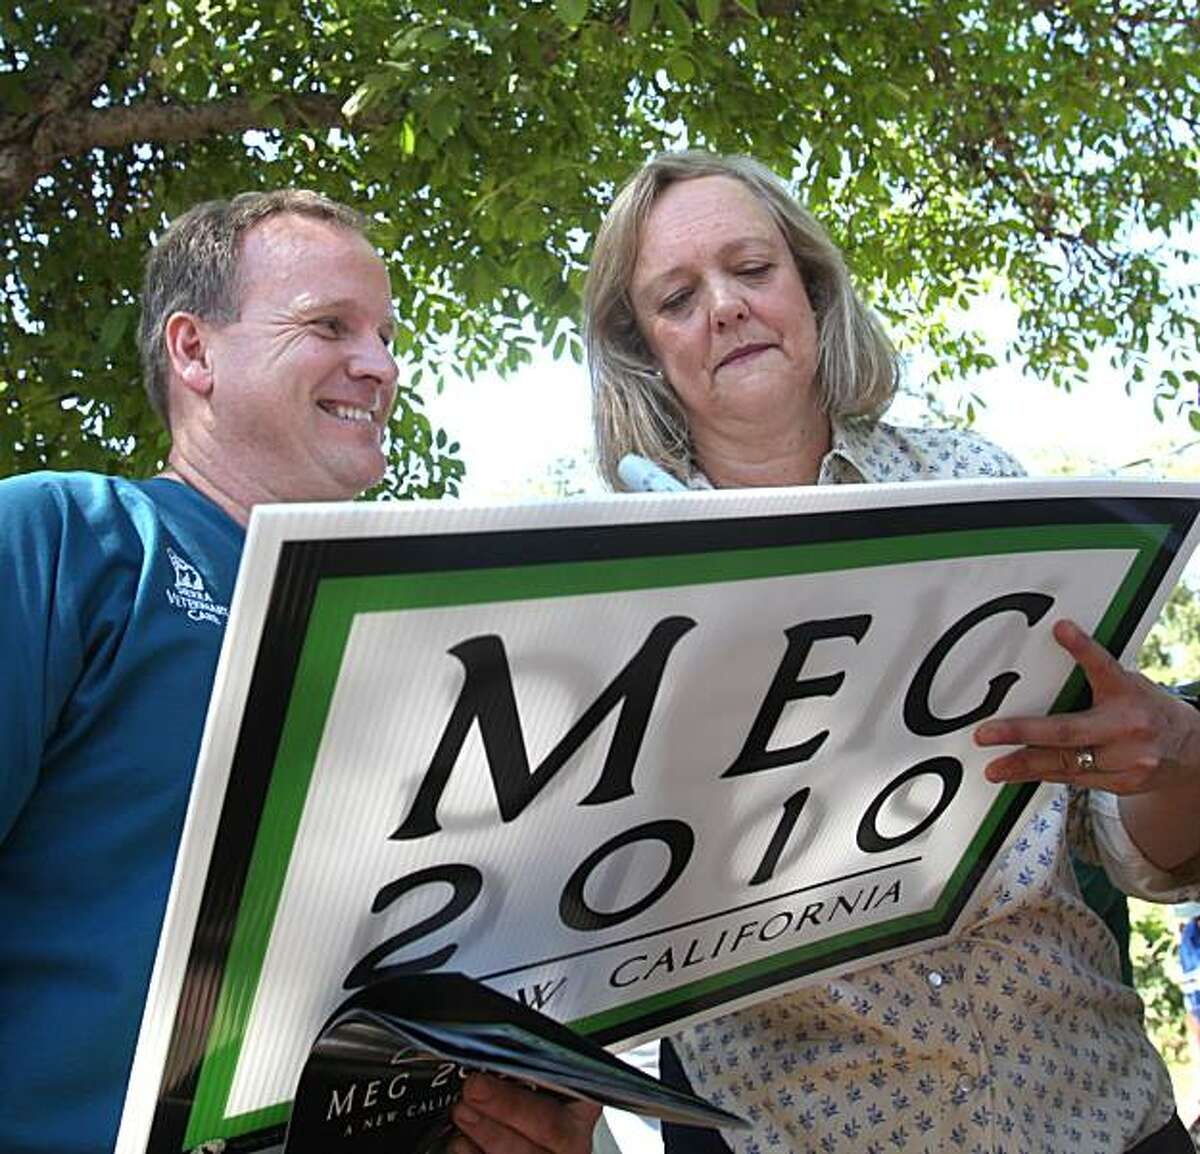 In this photo taken Saturday, Sept. 4, 2010,. Republican gubernatorial candidate Meg Whitman signs a campaign sign for Jeff Wittman at campaign stop in Columbia, Calif. Whitman, has repeatedly accused her opponent, Democrat Jerry Brown of allowing irresponsible growth in spending during his previous tenure at governor. A database analysis of Brown's eight years in office, by the Associated Press, found Whitman's characterizations to be misleading.